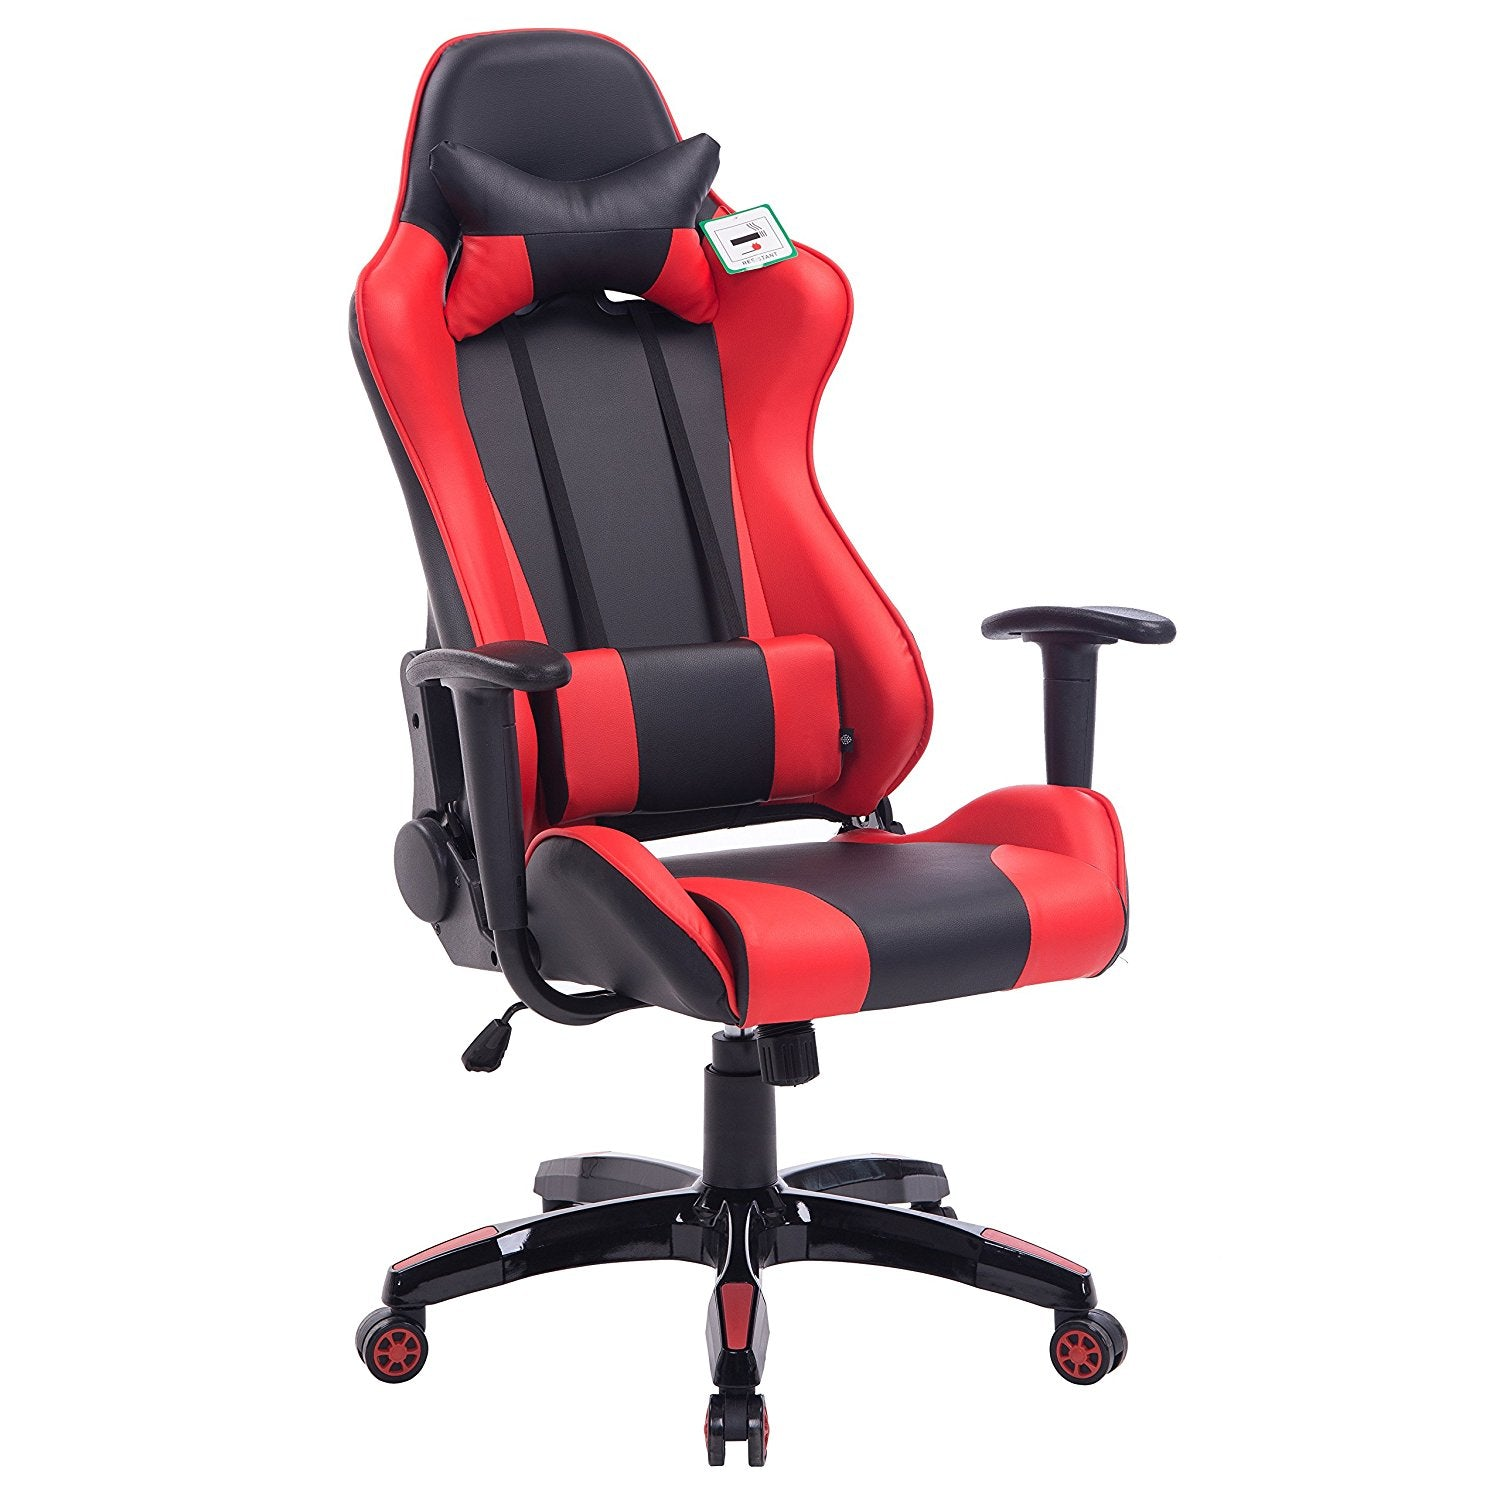 CTF PRO High Back Metal Frame Swivel Gaming Chair with 3-D Adjustable Armrests, Red